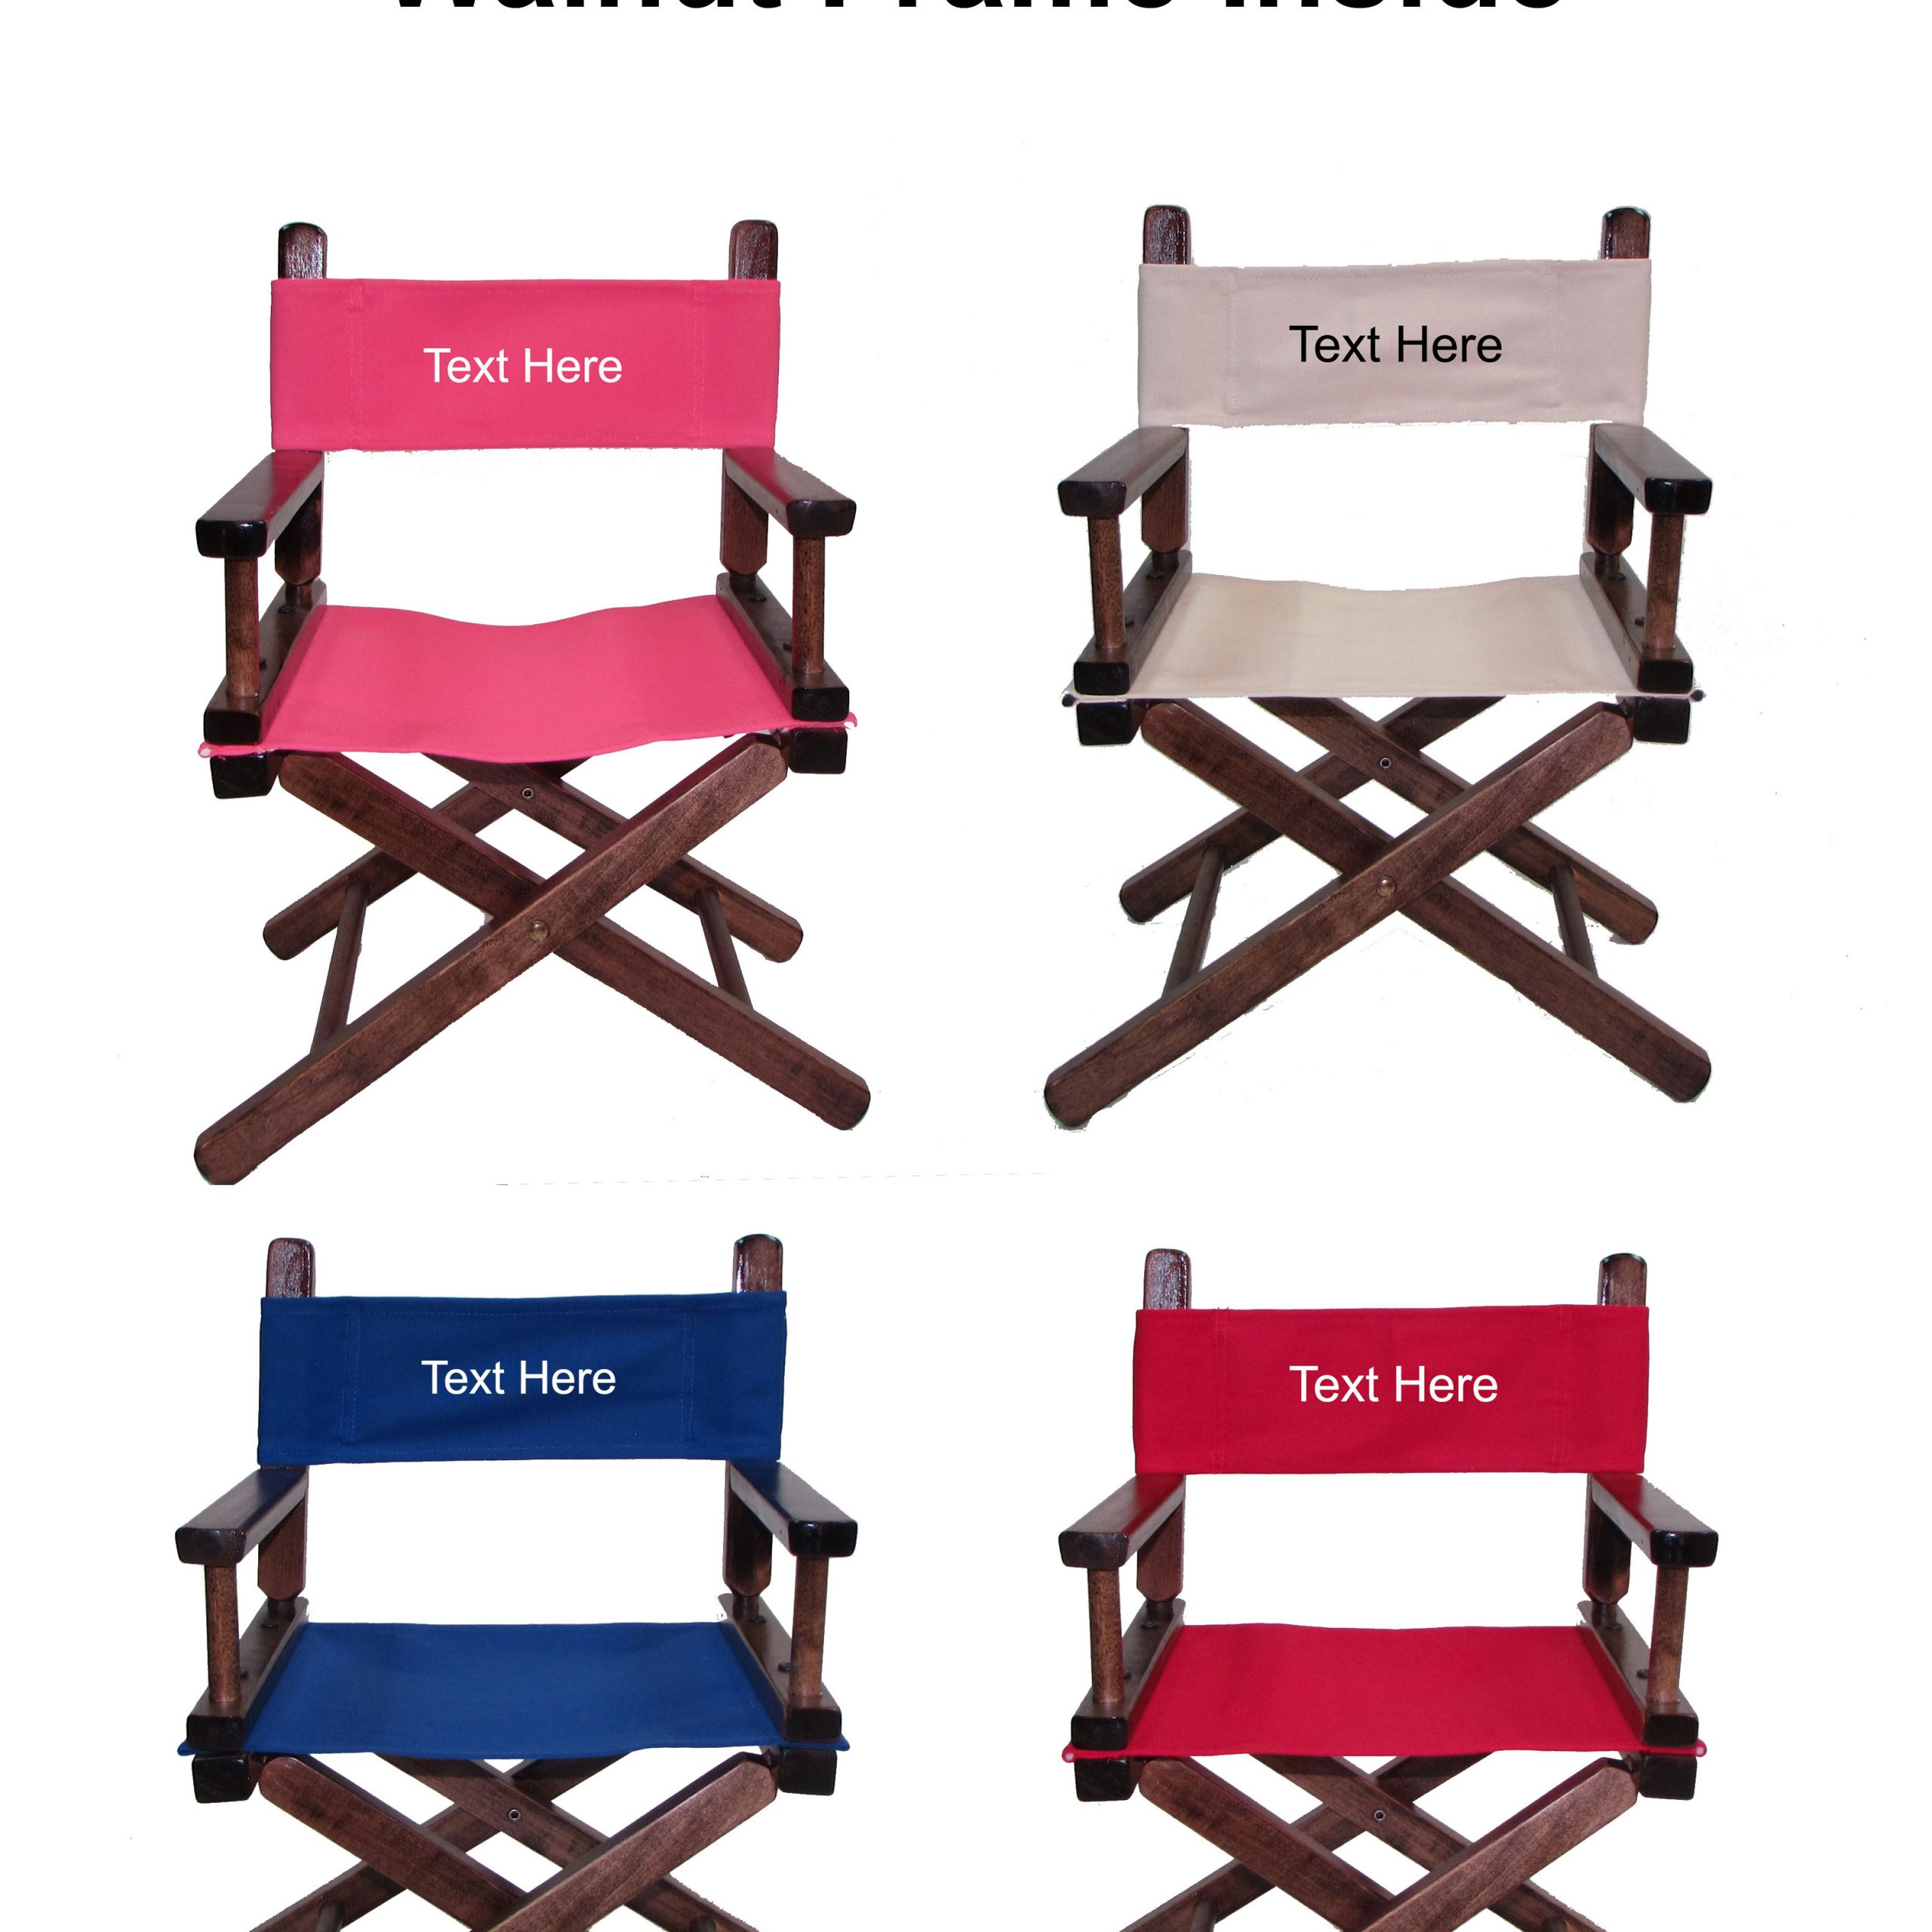 Personalized Toddlers Director Chair   Kids Directors Inside Personalized Kids Chairs And Sofas (View 10 of 15)